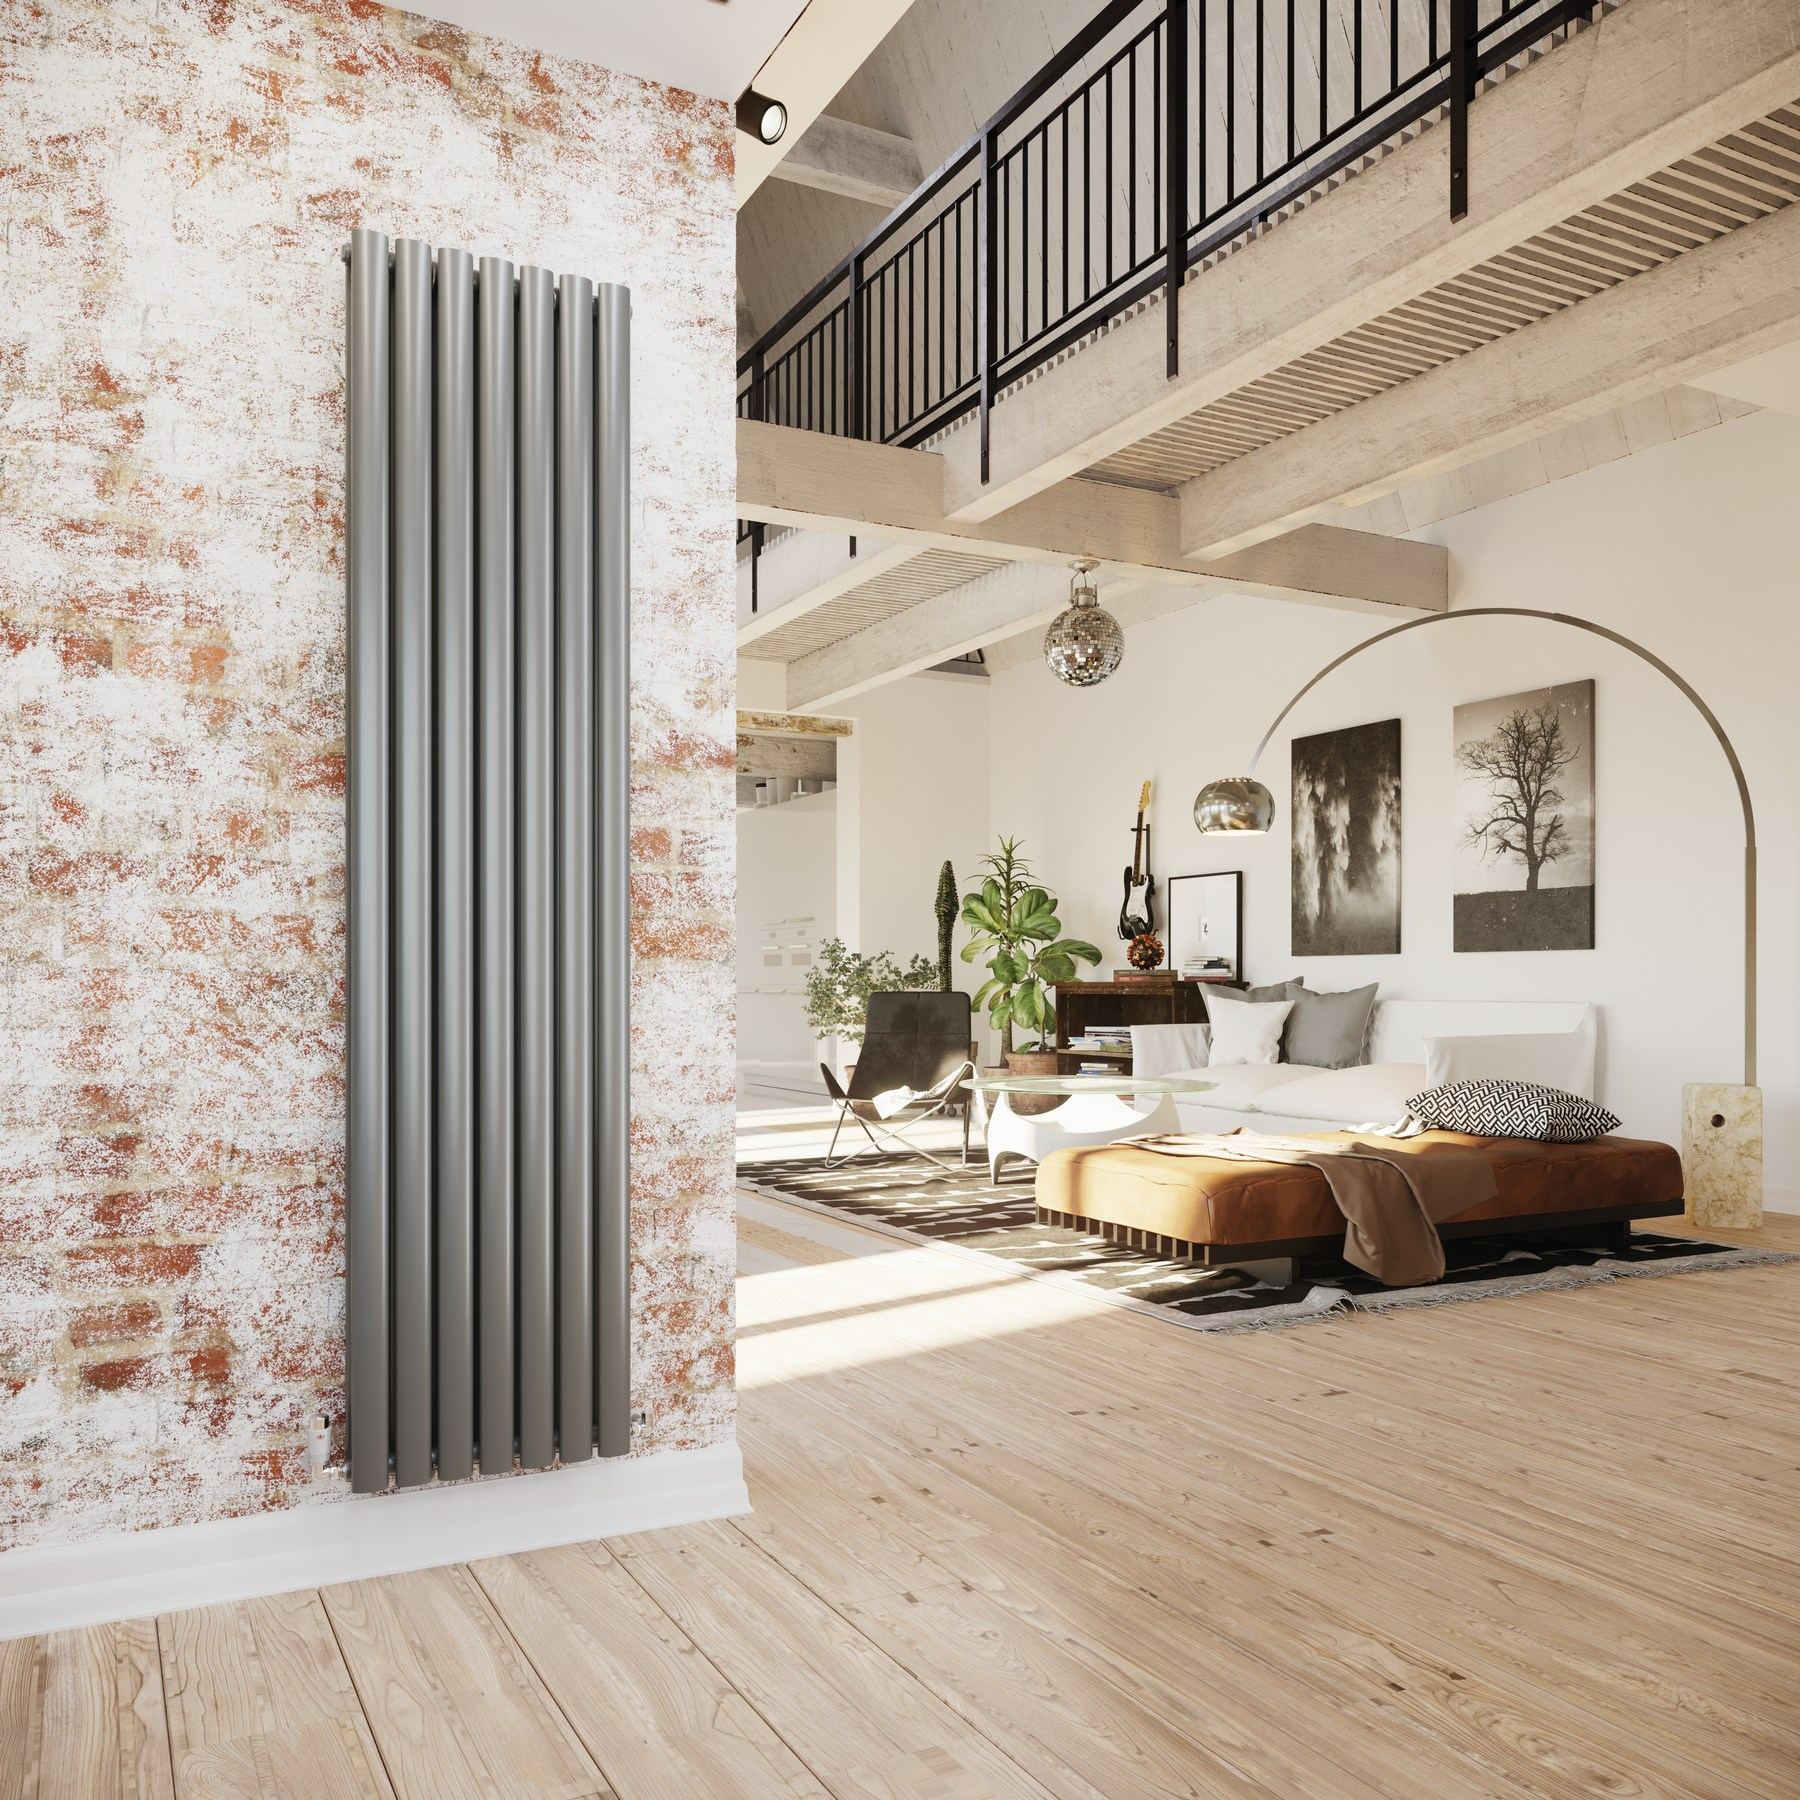 Tall Radiators The Leading Home Heating Trend For 2020 Dq Heating